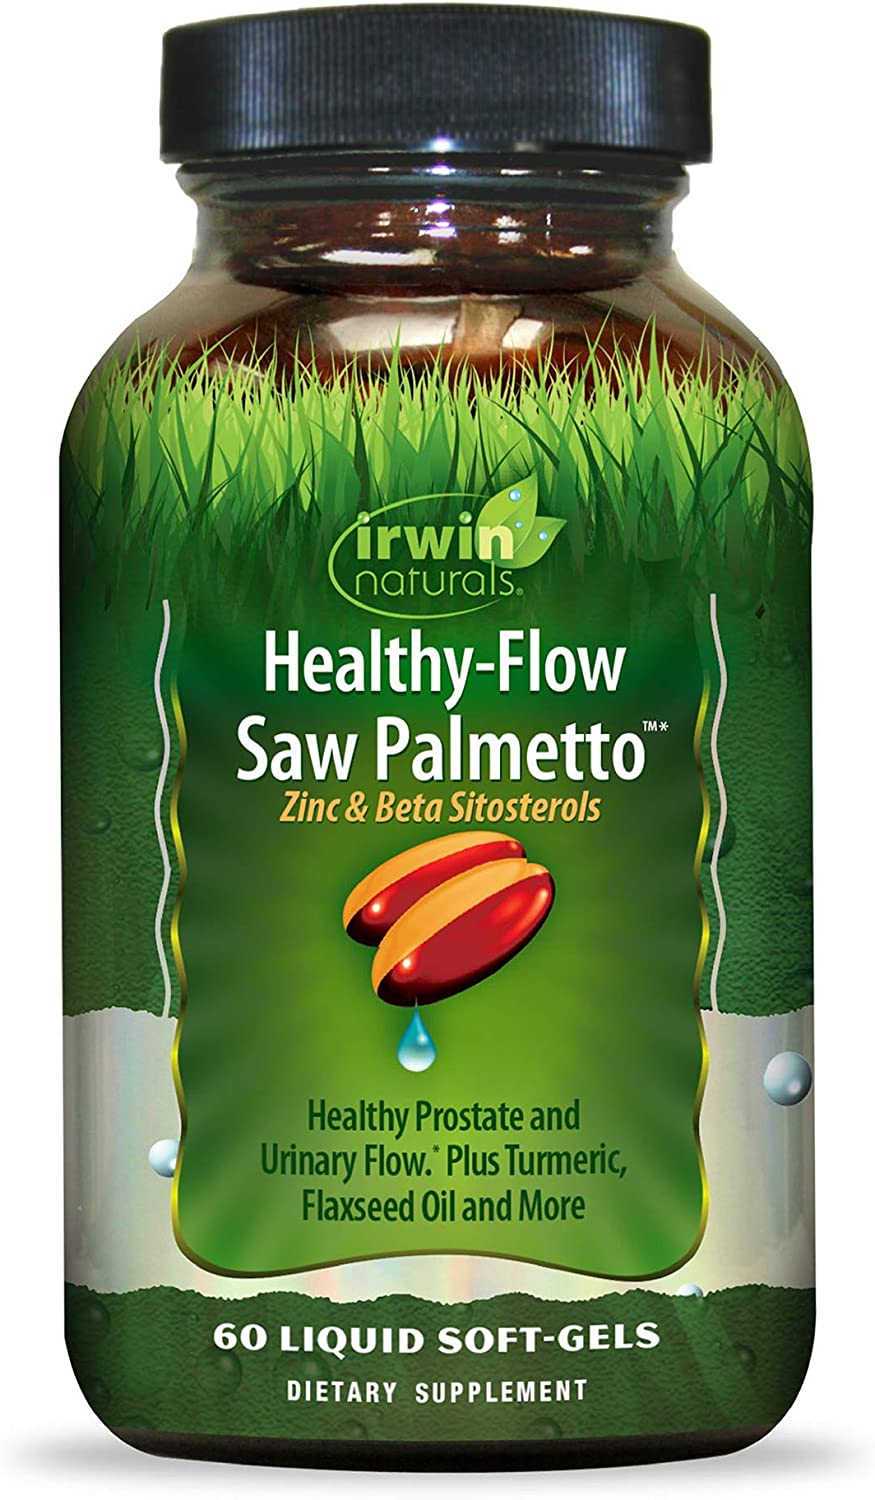 Irwin Naturals Healthy Flow Saw Palmetto with Zinc, Beta Sitosterols, Turmeric, Stinging Nettle & Pumpkin Seed - Promotes Healthy Prostate & Urinary Flow - Antioxidant Support - 60 Liquid Softgels